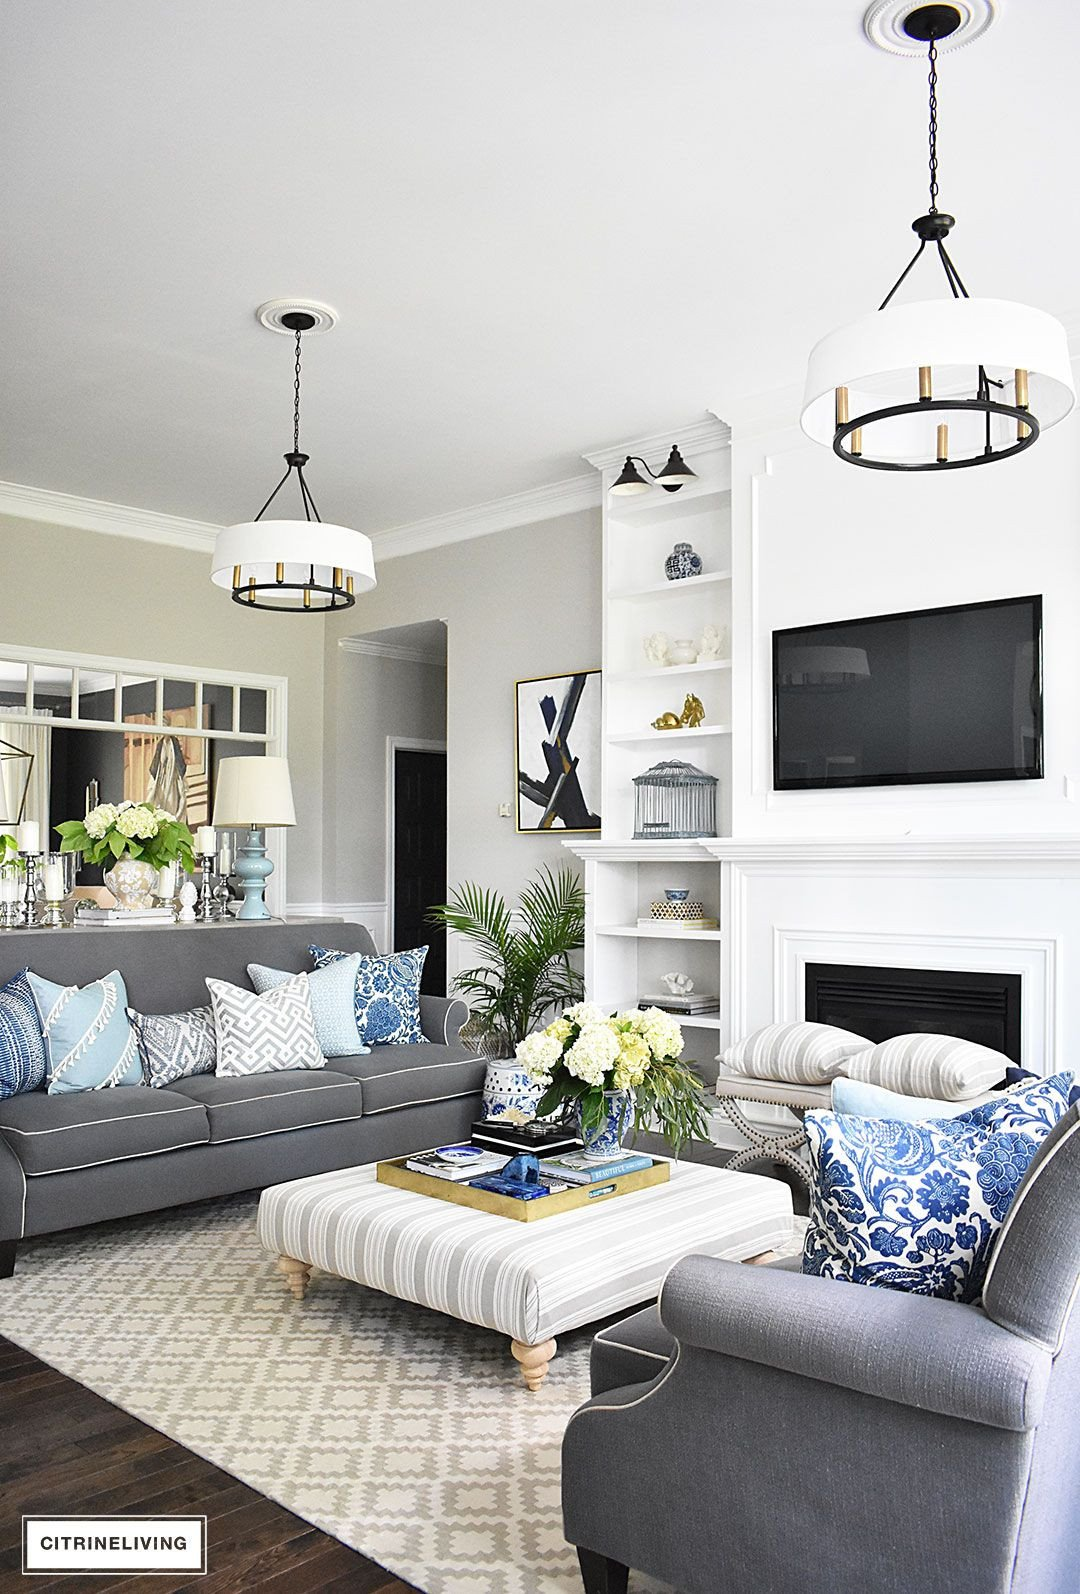 Small Blue Living Room Ideas 20 Fresh Ideas for Decorating with Blue and White